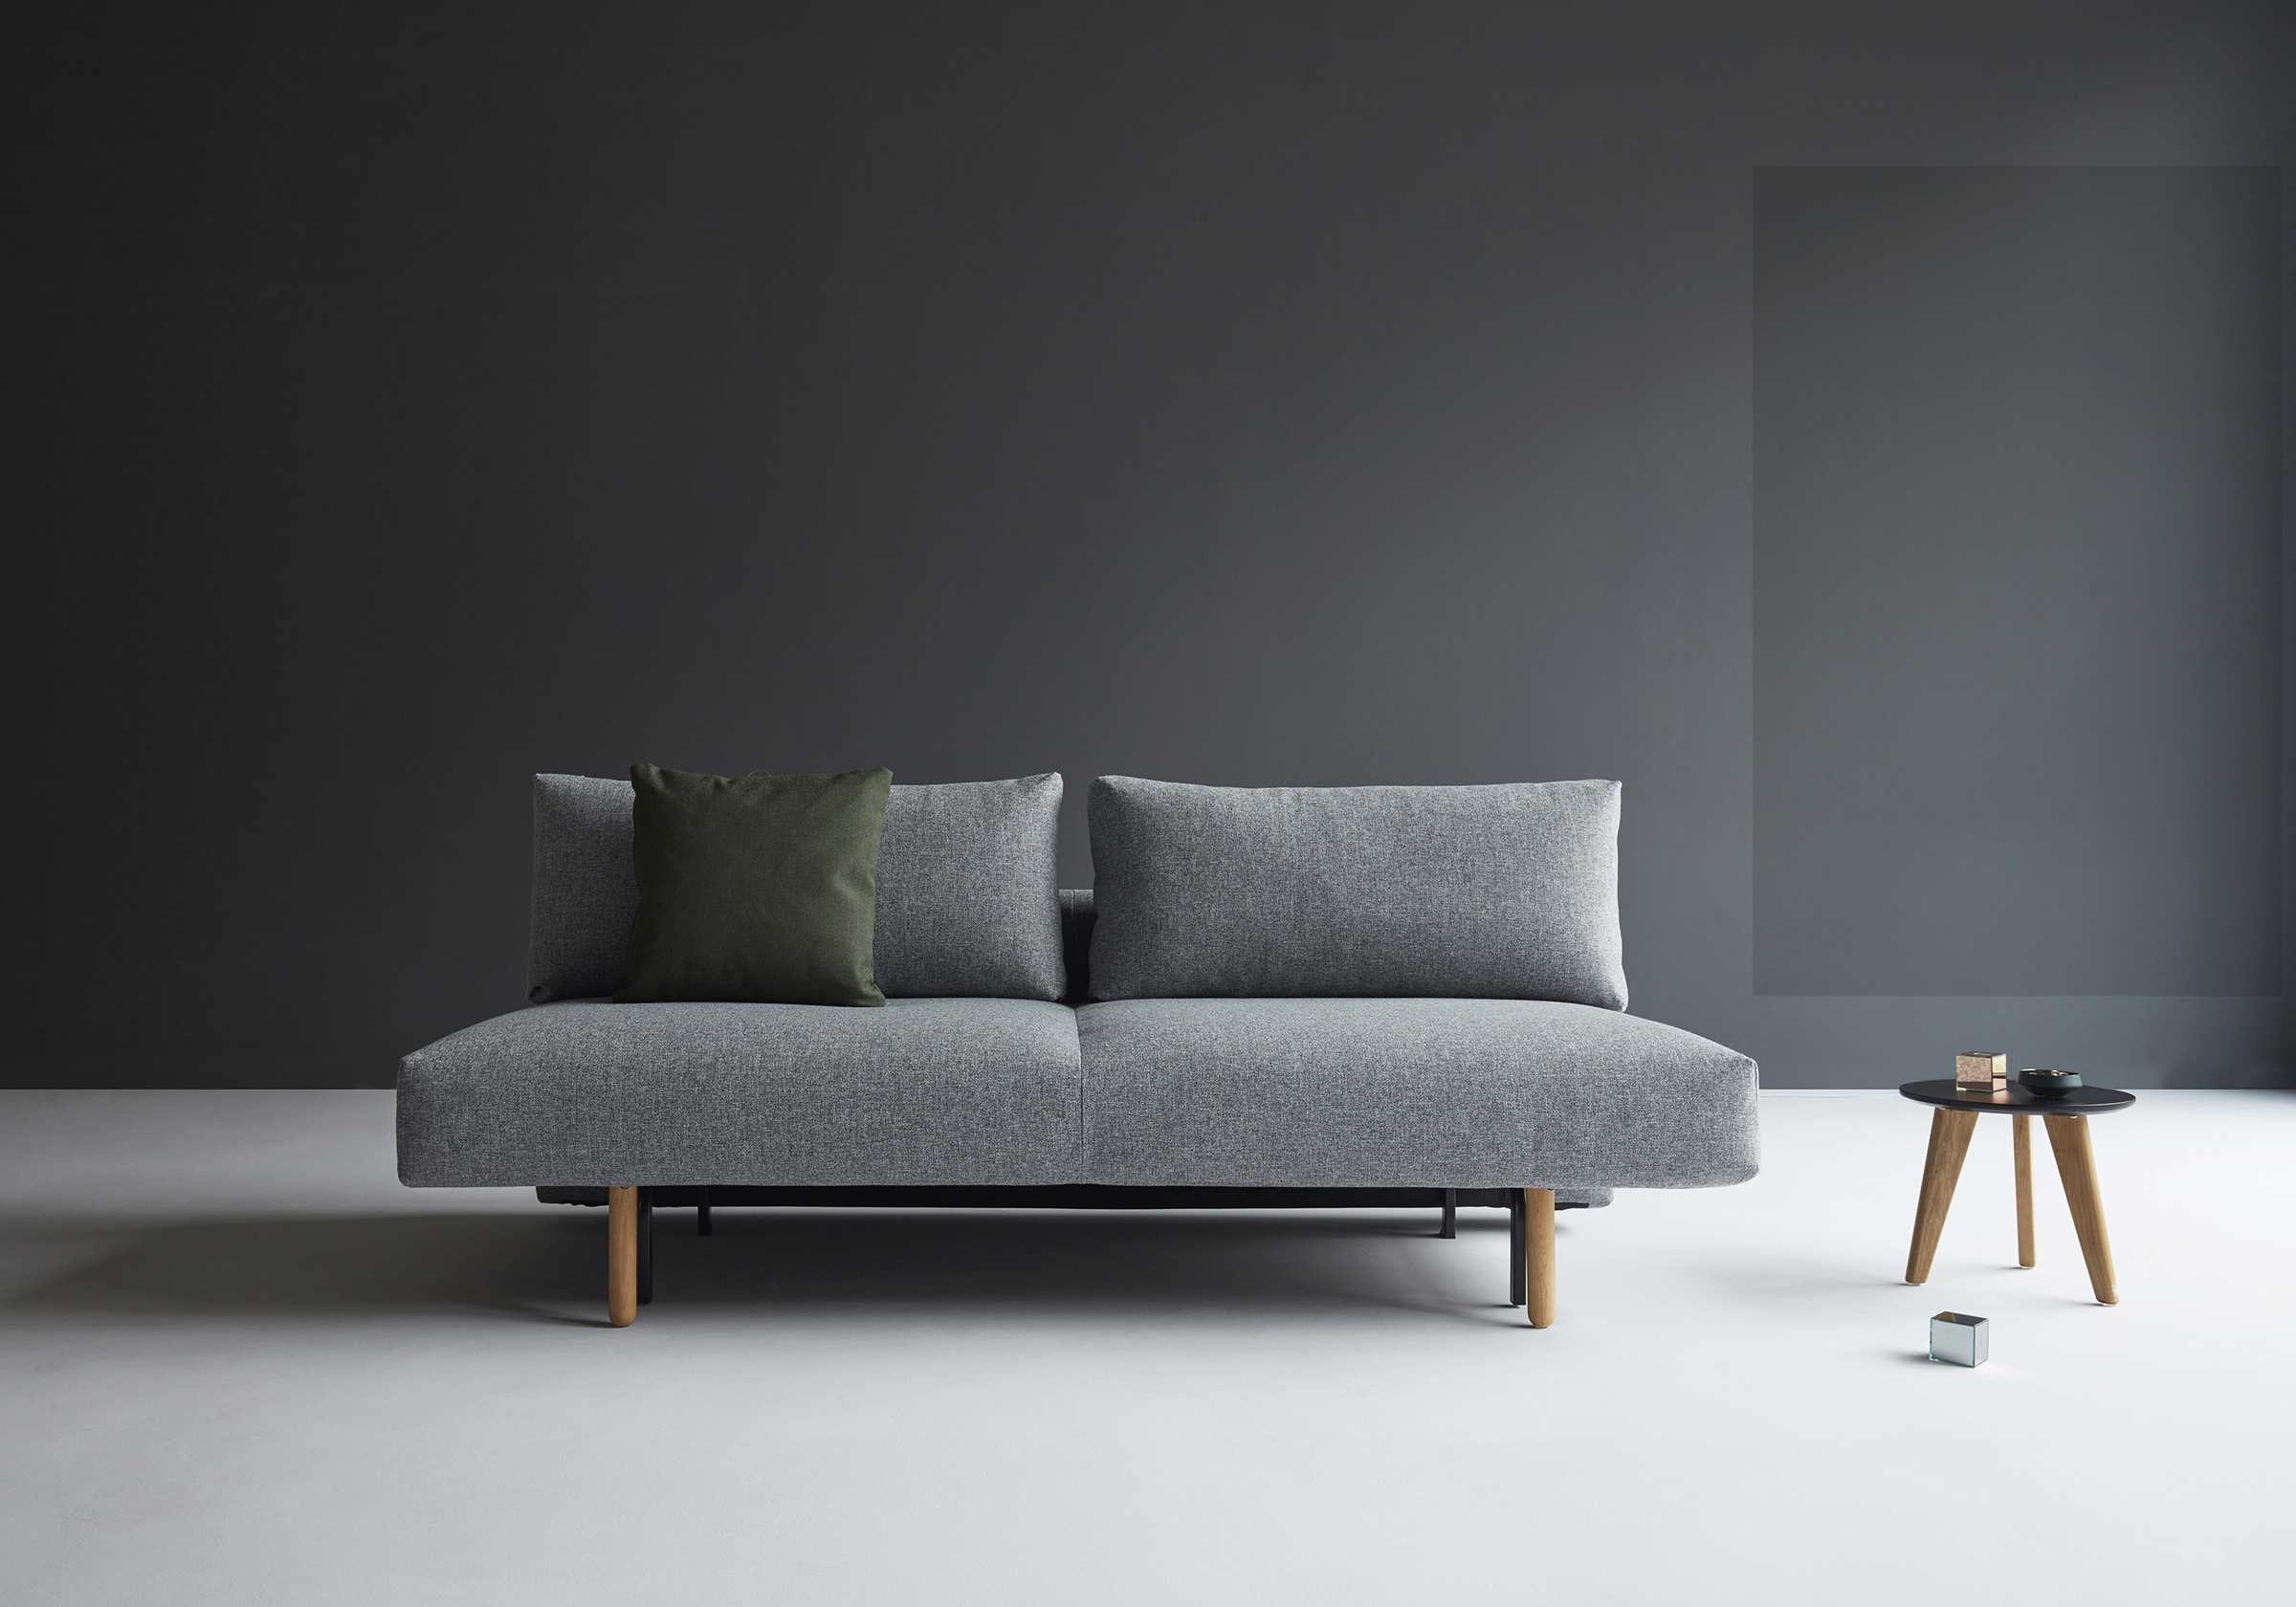 Design Sofa Kaufen 12 Of The Best Minimalist Sofa Beds For Small Spaces